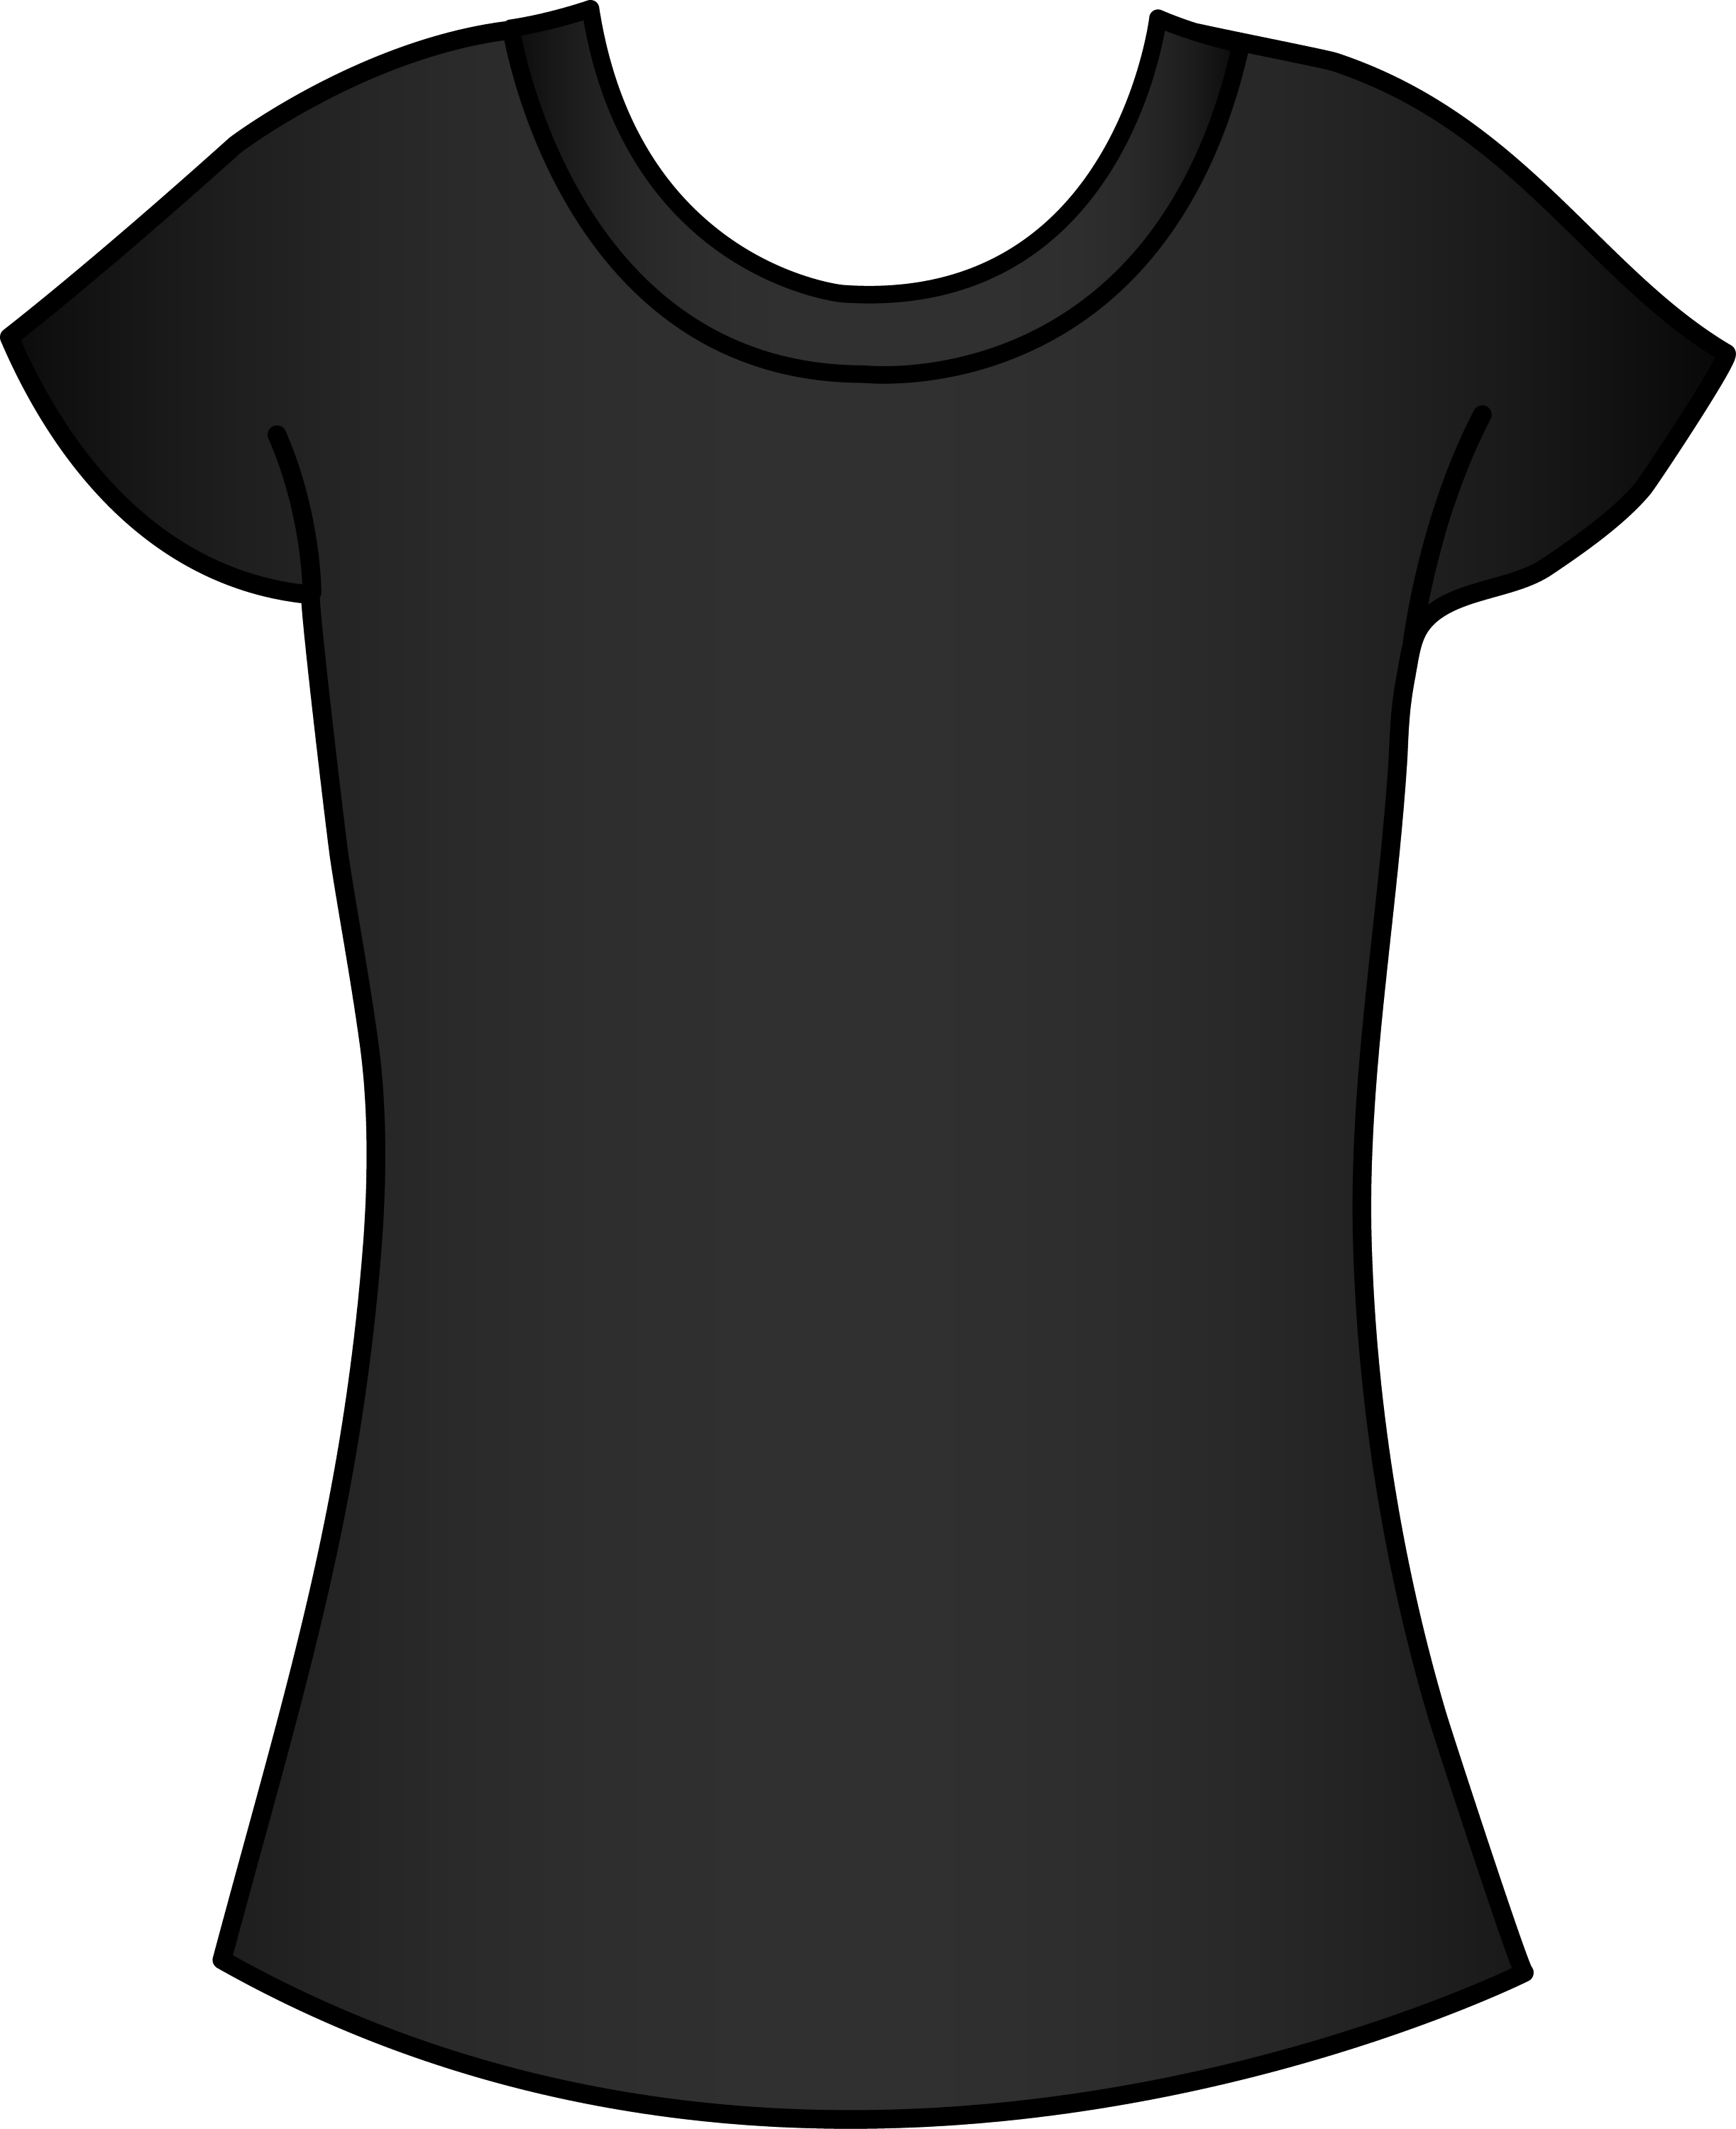 womens black t shirt template free clip art. Black Bedroom Furniture Sets. Home Design Ideas